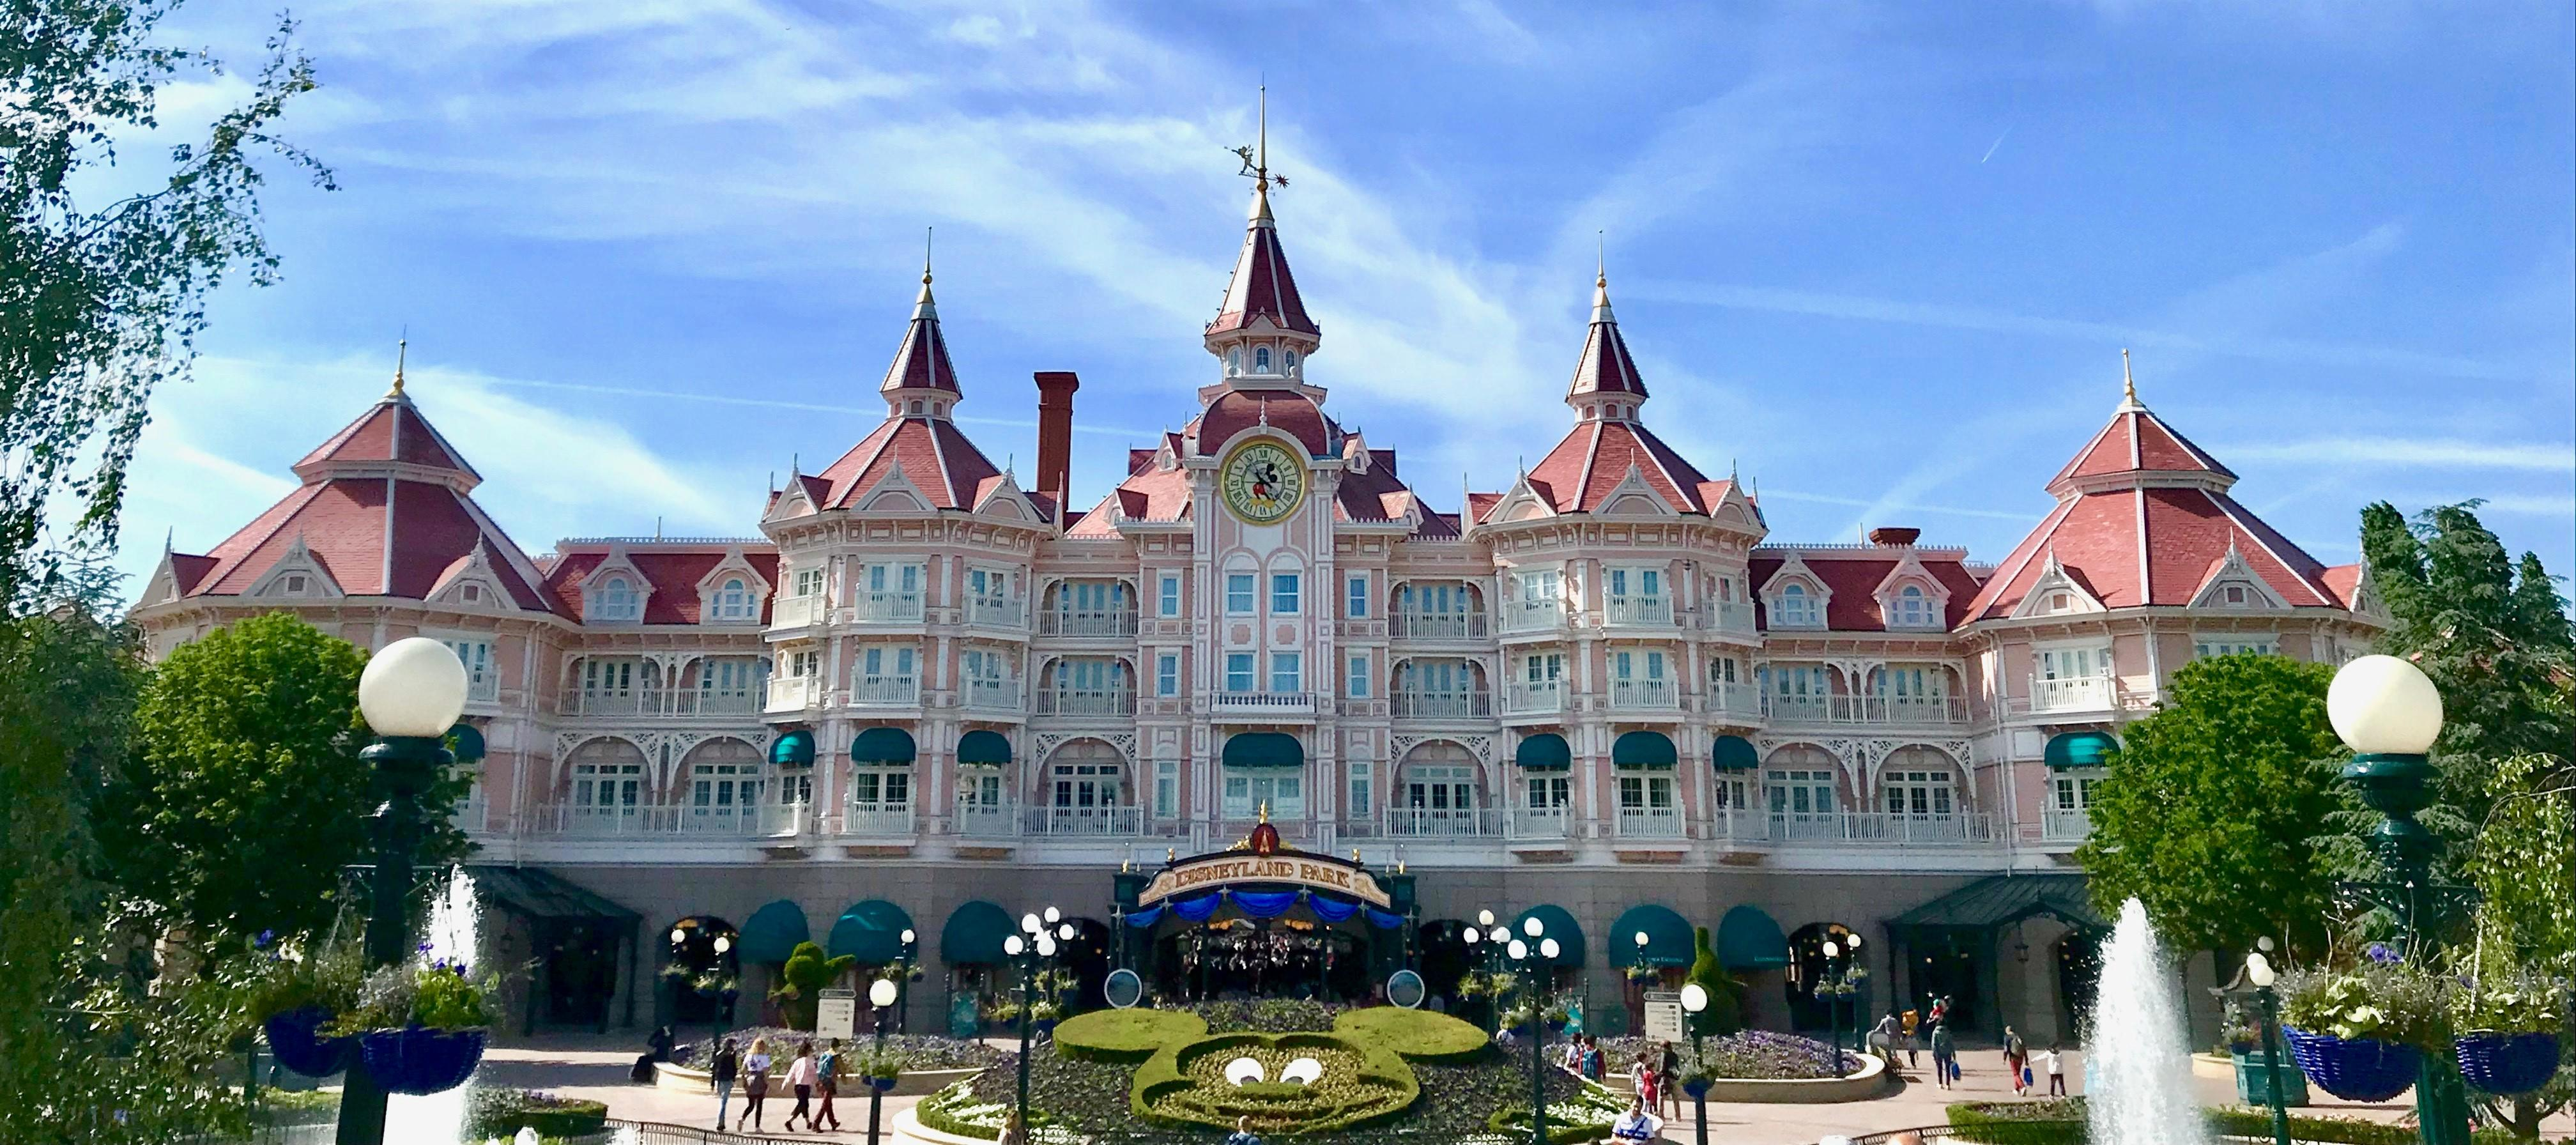 5 Reasons Why You Should Stay In A Disney Hotel In Disneyland Paris